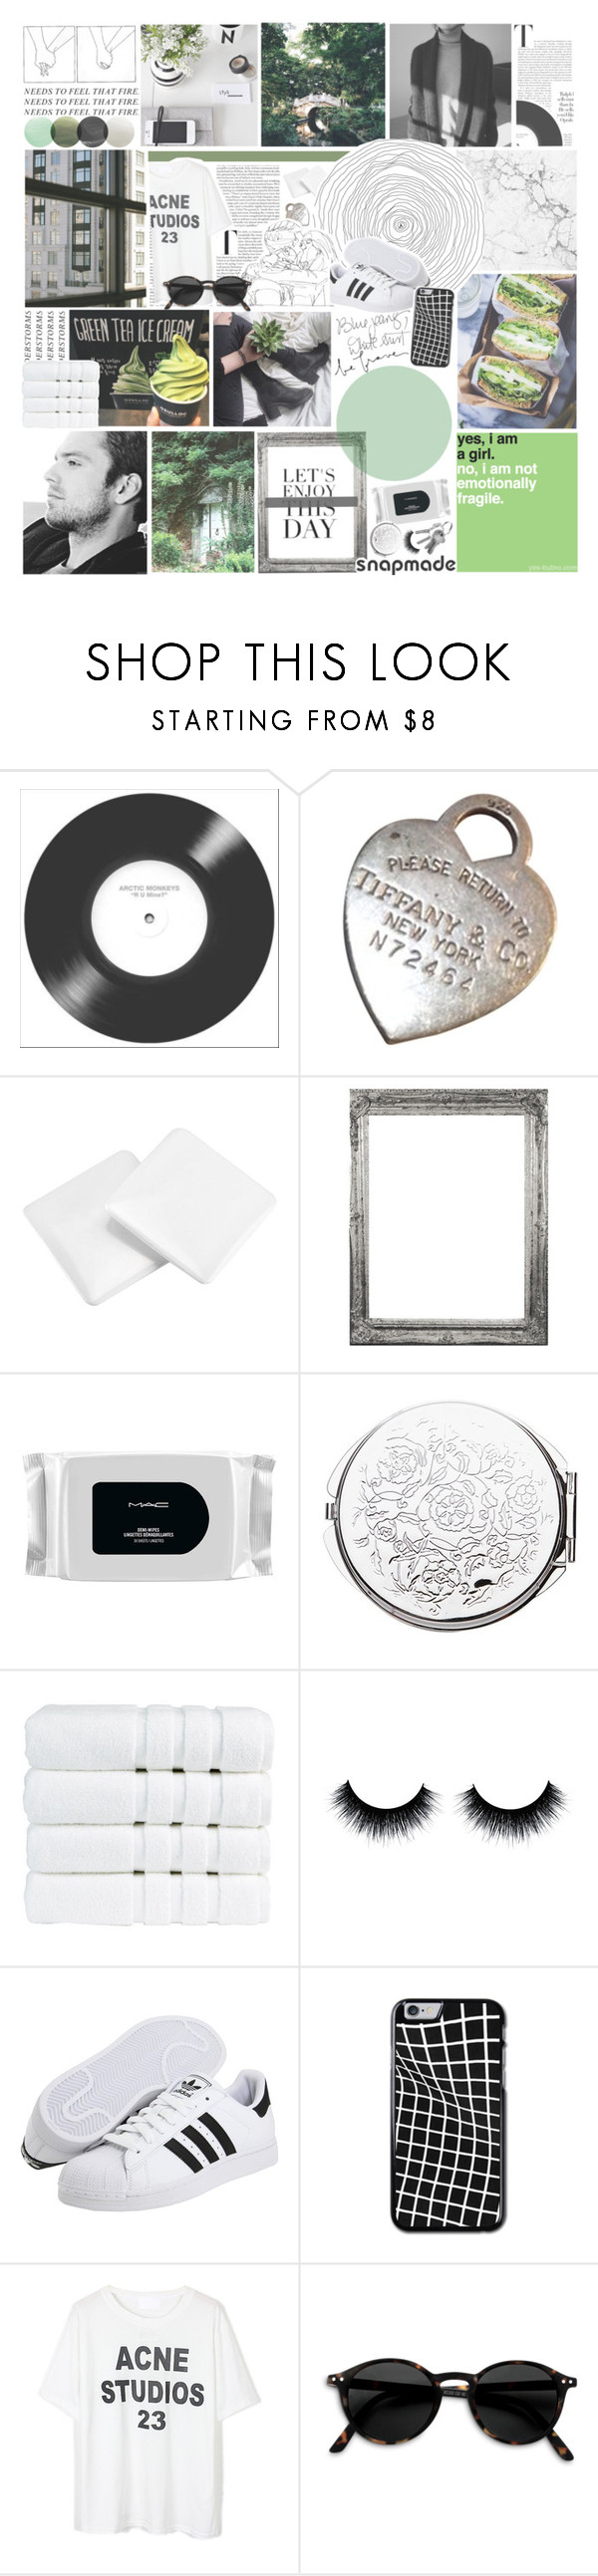 """- our disco ball's my kitchen light. -"" by etoilesdanse ❤ liked on Polyvore featuring Tiffany & Co., MAC Cosmetics, Christy, adidas Originals, kitchen and gottatagrandomn3ss"